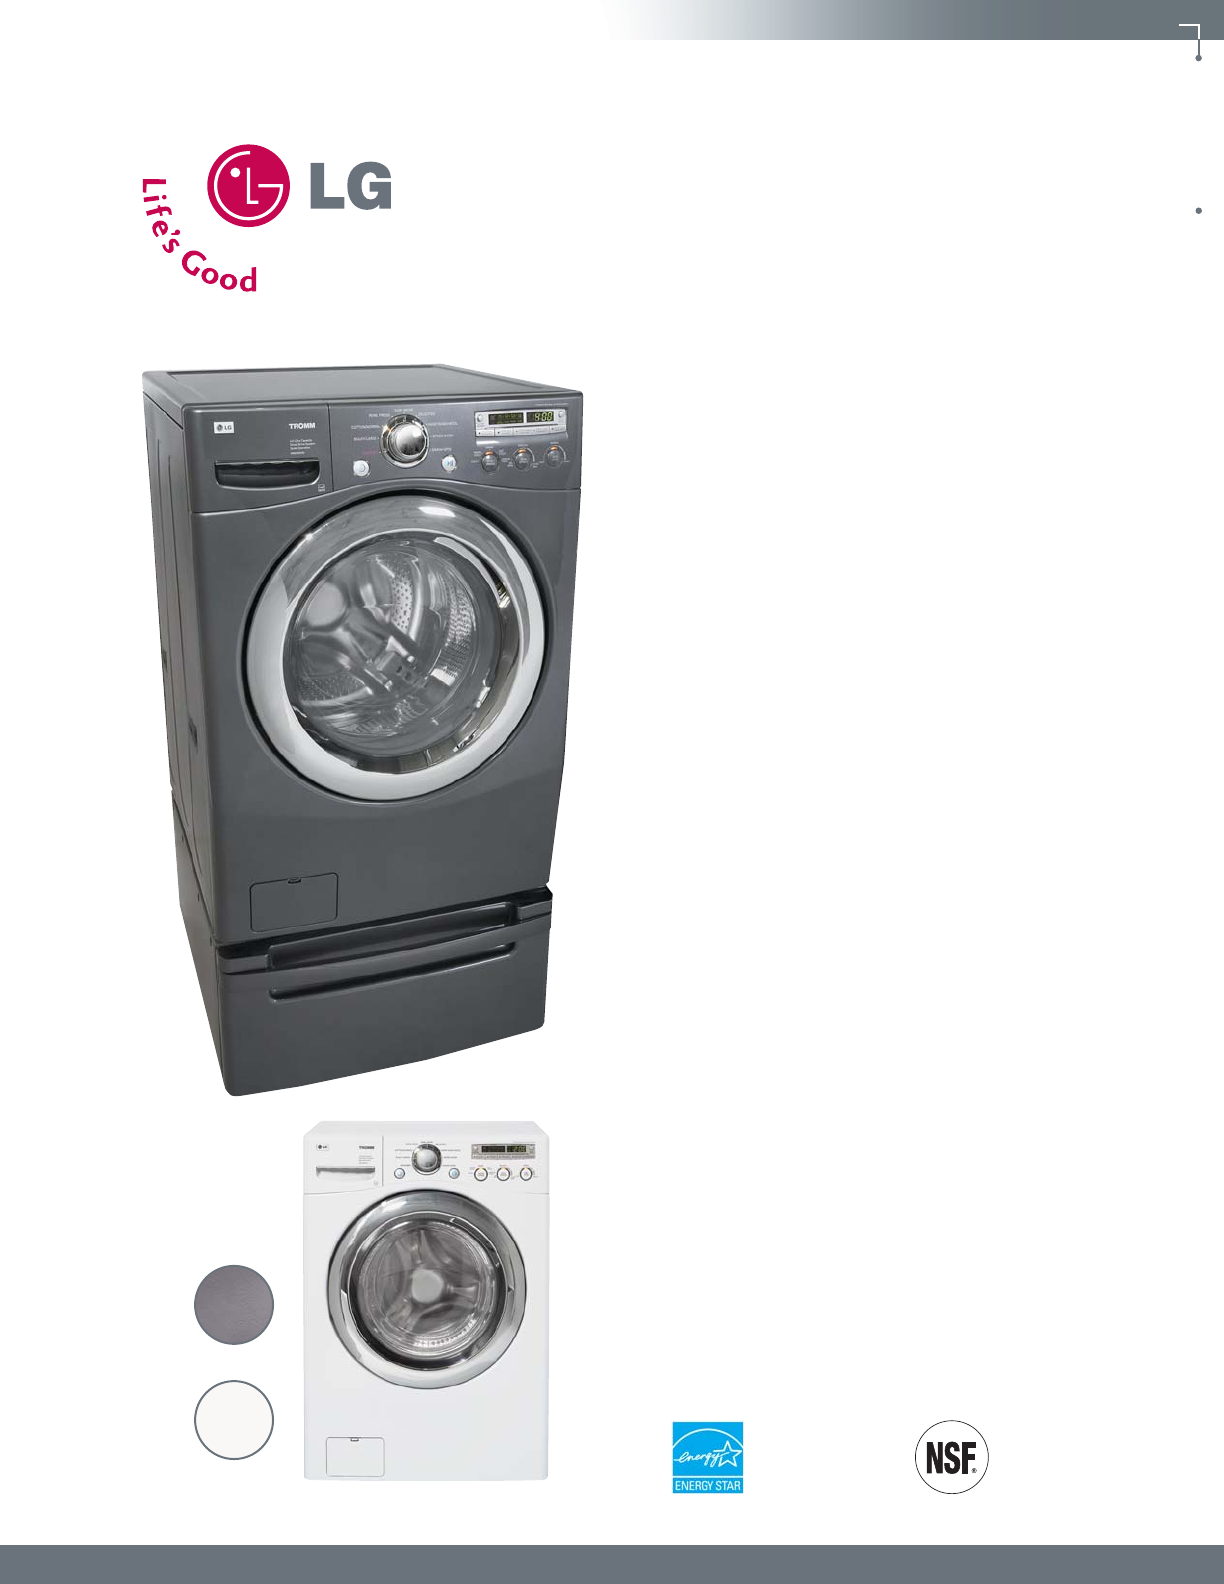 lg electronics washer wm2455hg user guide manualsonline com rh tv manualsonline com LG Washer WM2455HW Manual Model Number Wmo642hw LG Washing Machine ManualsOnline